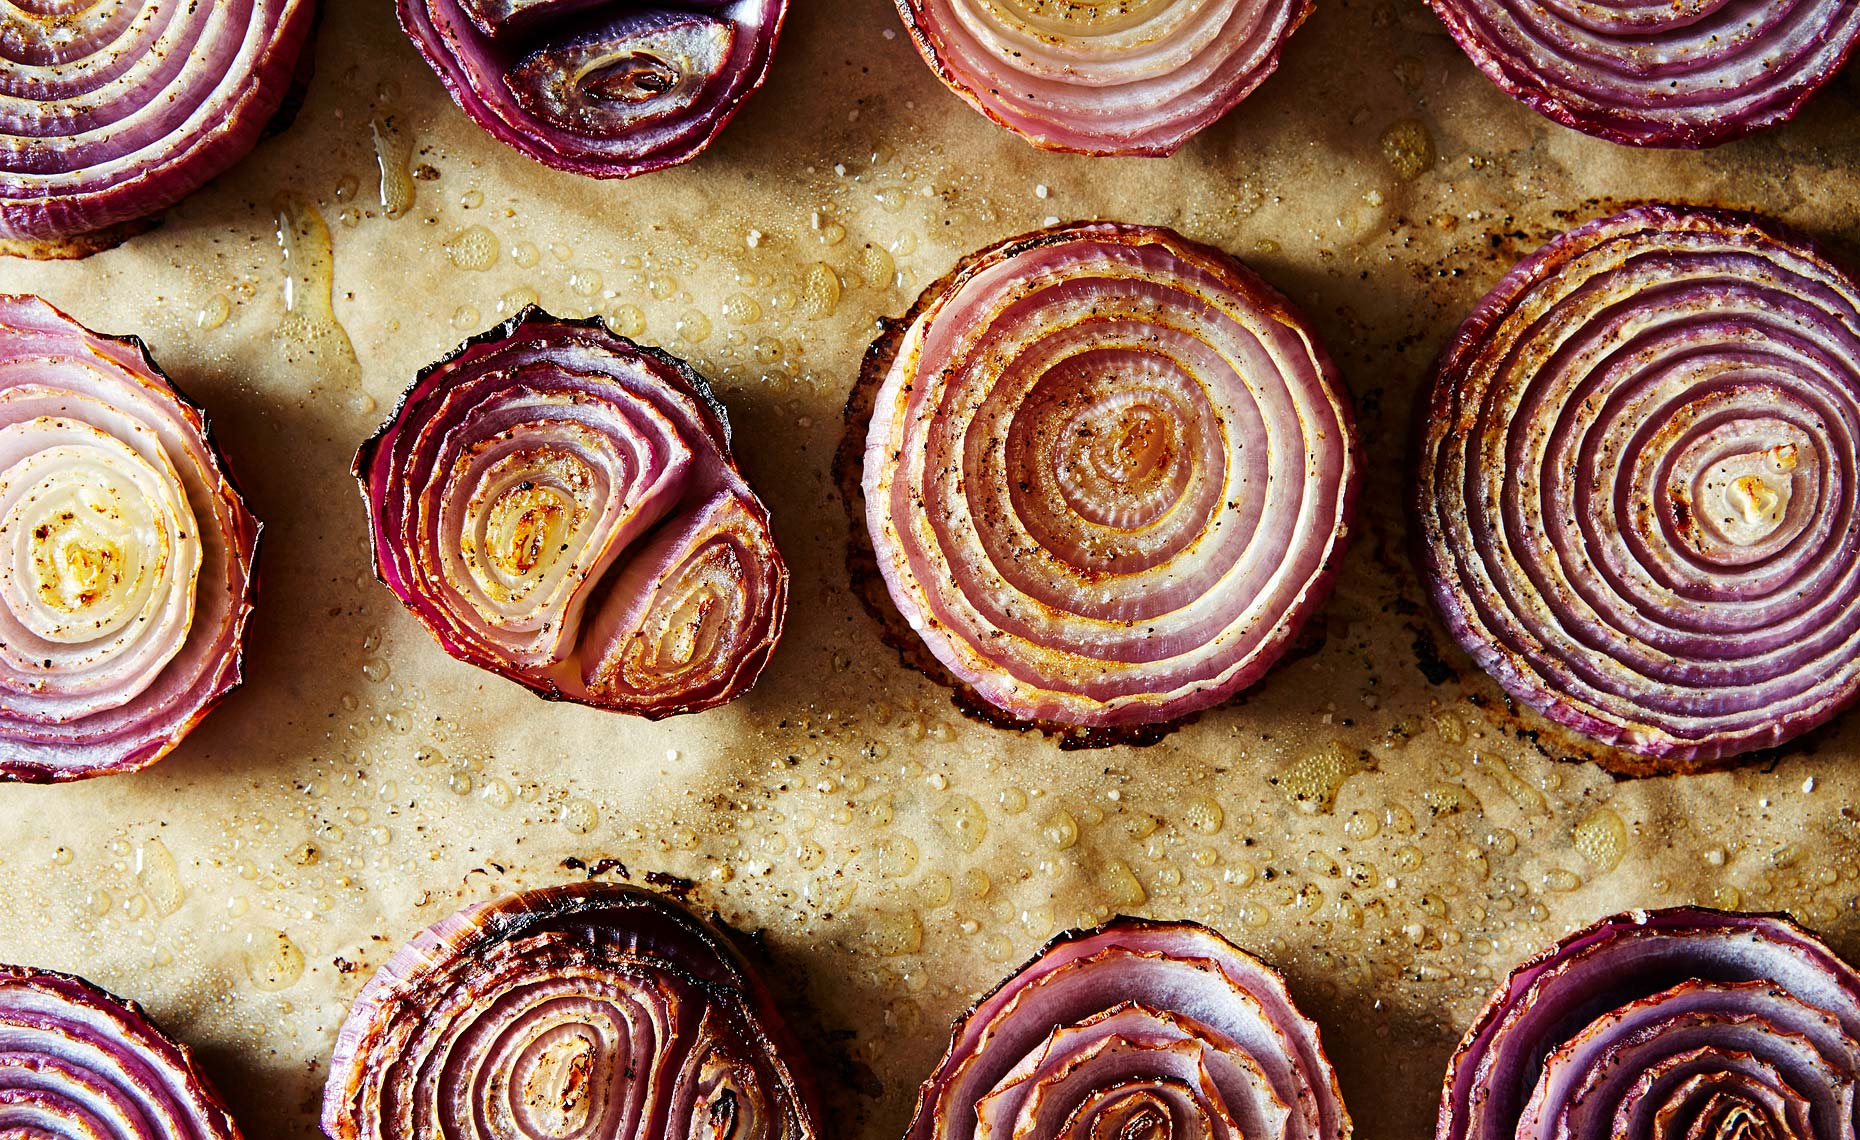 037_roasted-red-onions_food52_mark_weinberg_14-11-04_0133